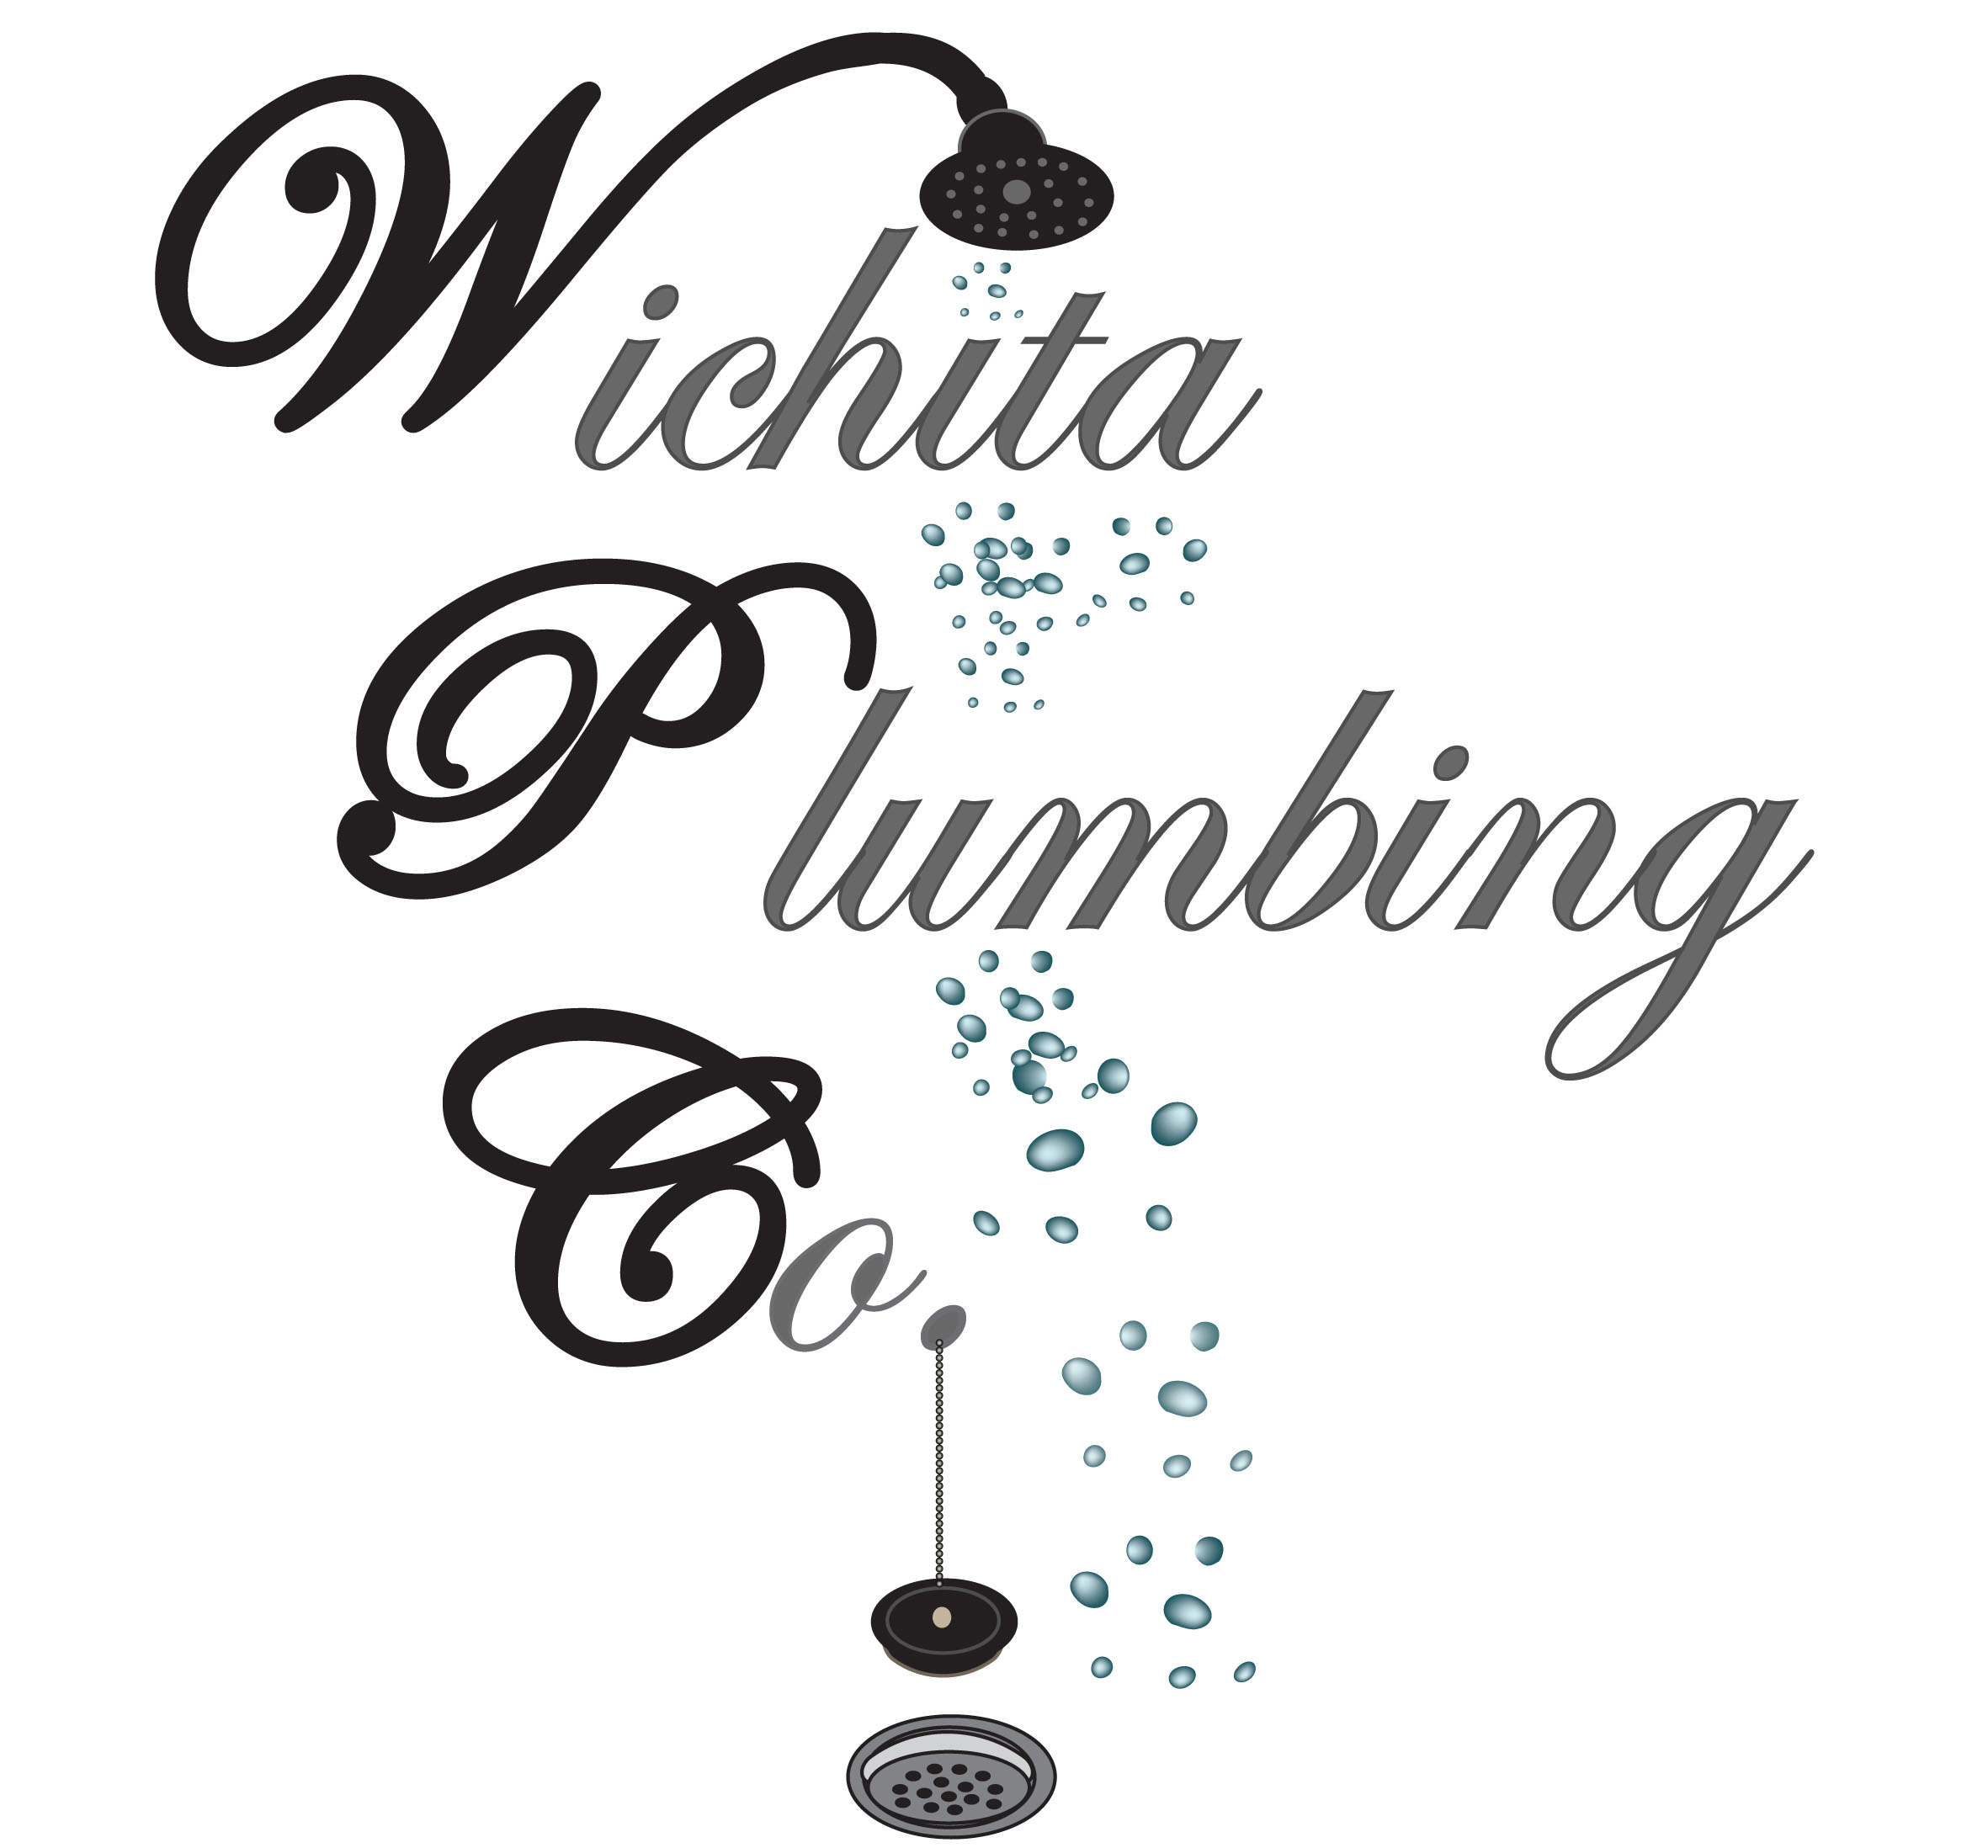 wichita plumbing company 24 hour hr emergency plumbing service hot water tanks clogged drains toilet water lines services ks kansas